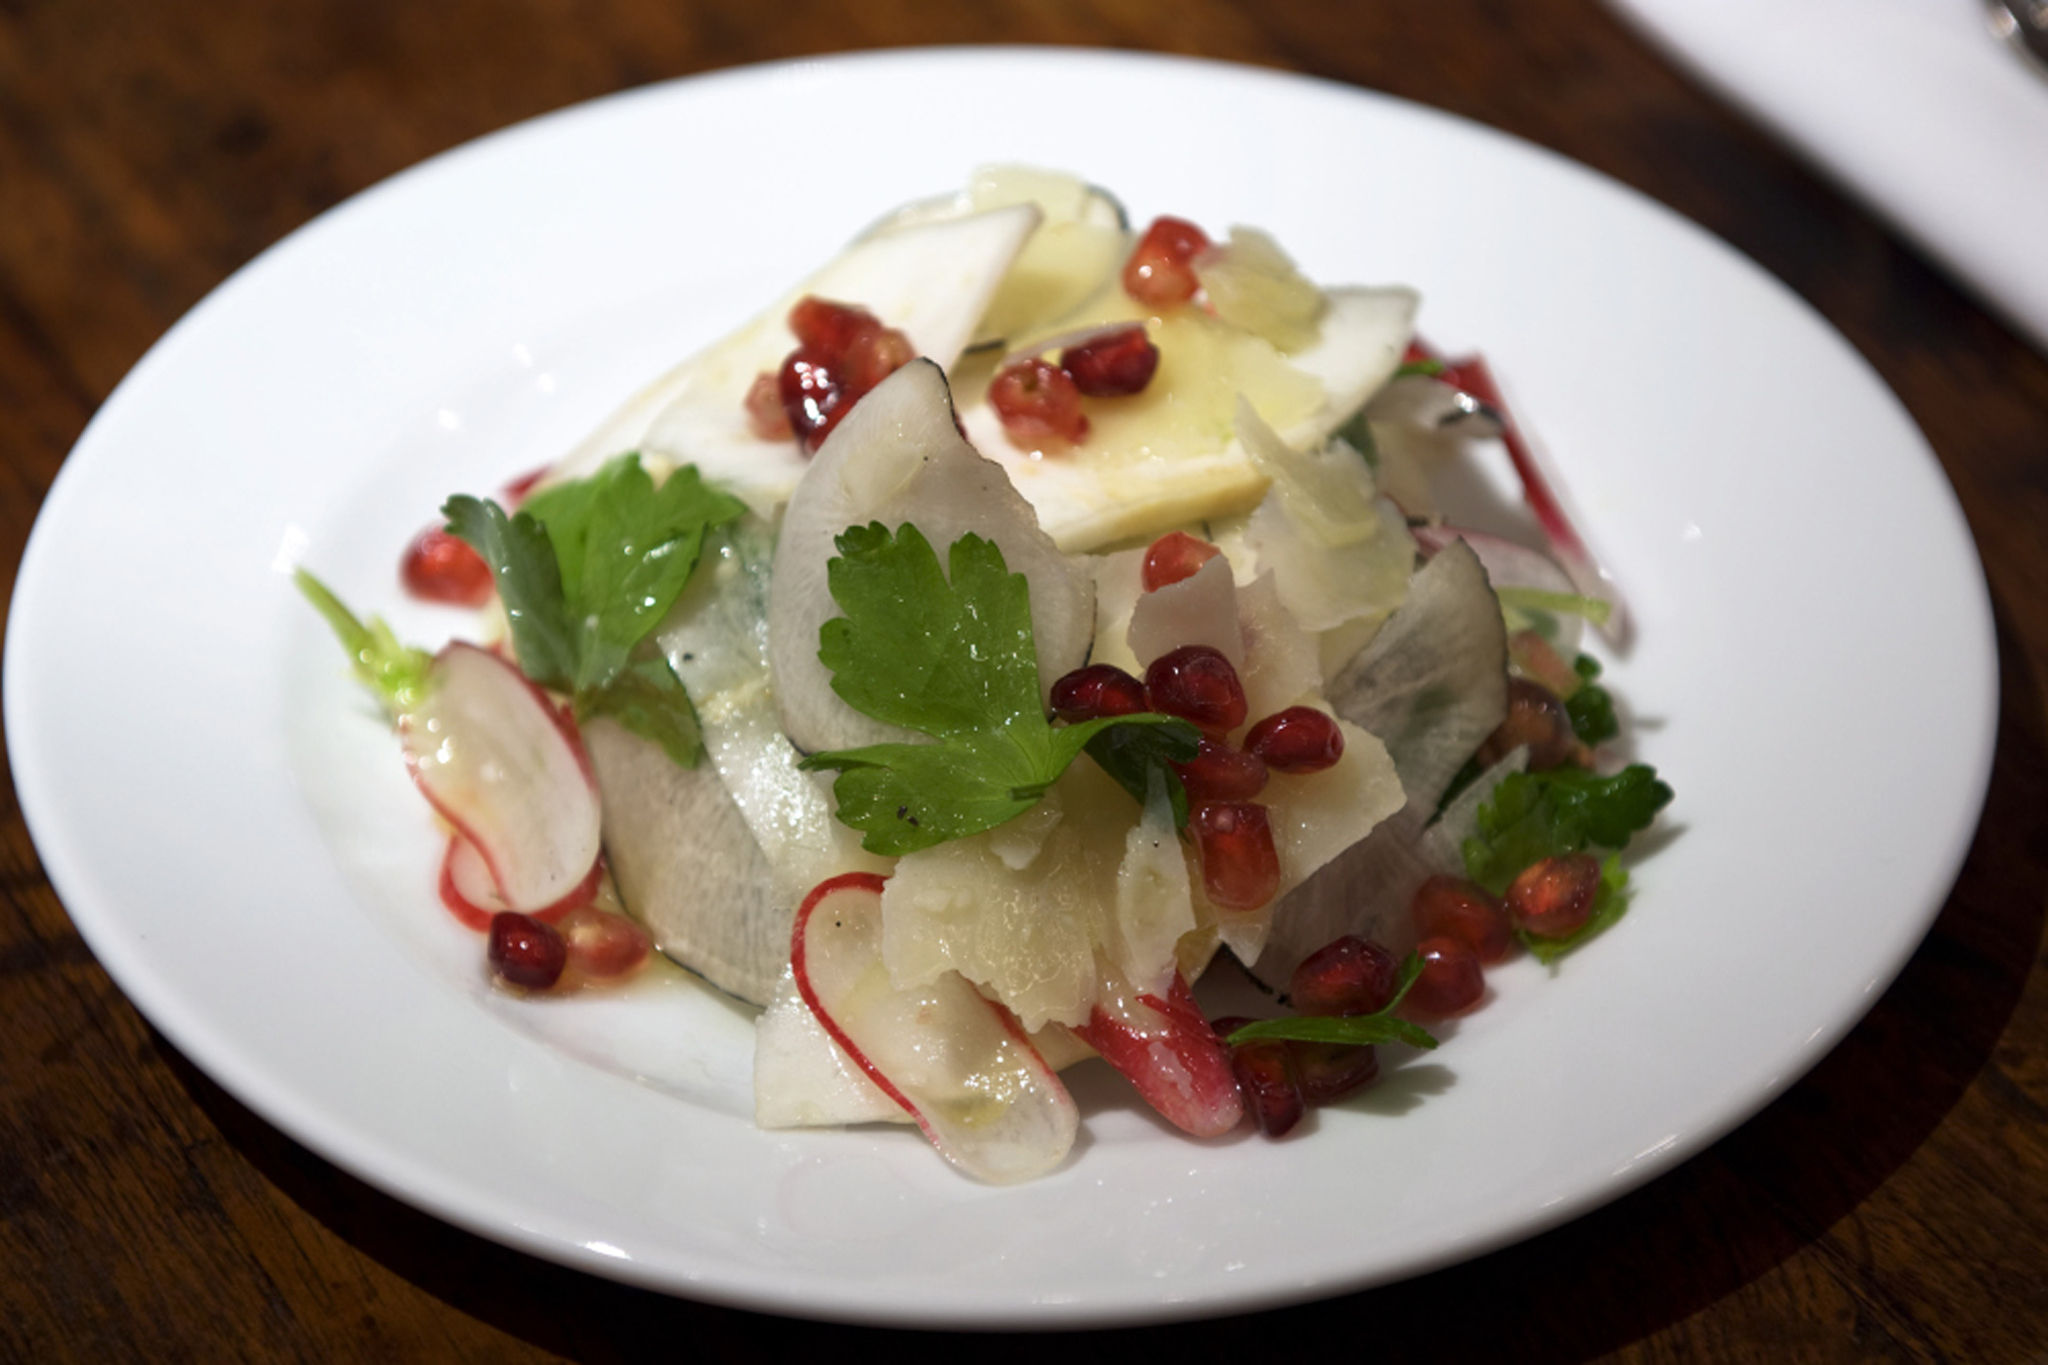 Radish, celeriac, pomegranate and pecorino salad with truffle dressing at Bocca di Lupo